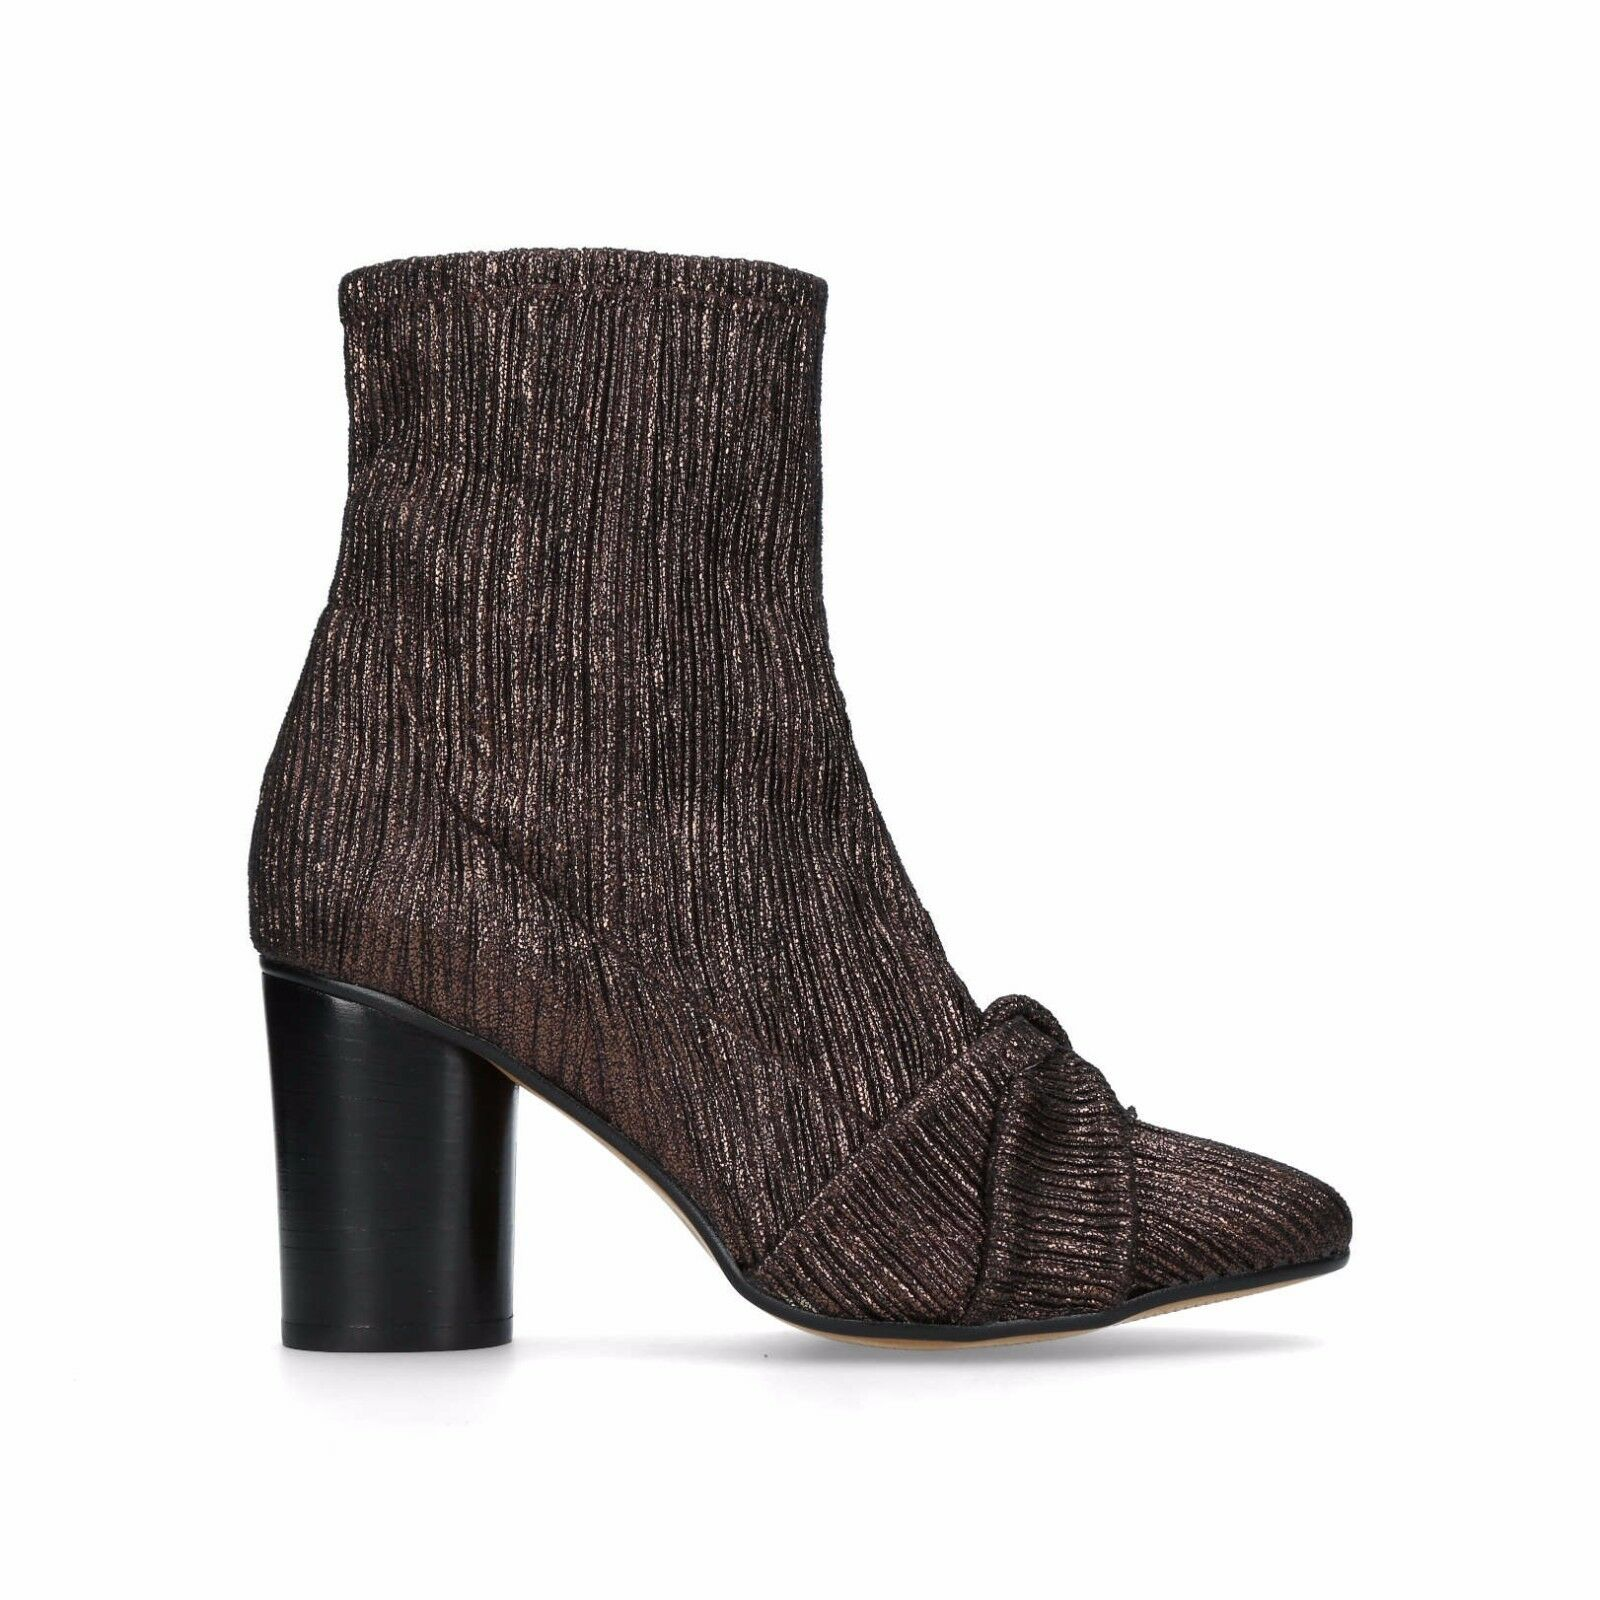 H By Hudson Camille Bronze Calf Heeled Ankle Dress Stiefel 3 to 7